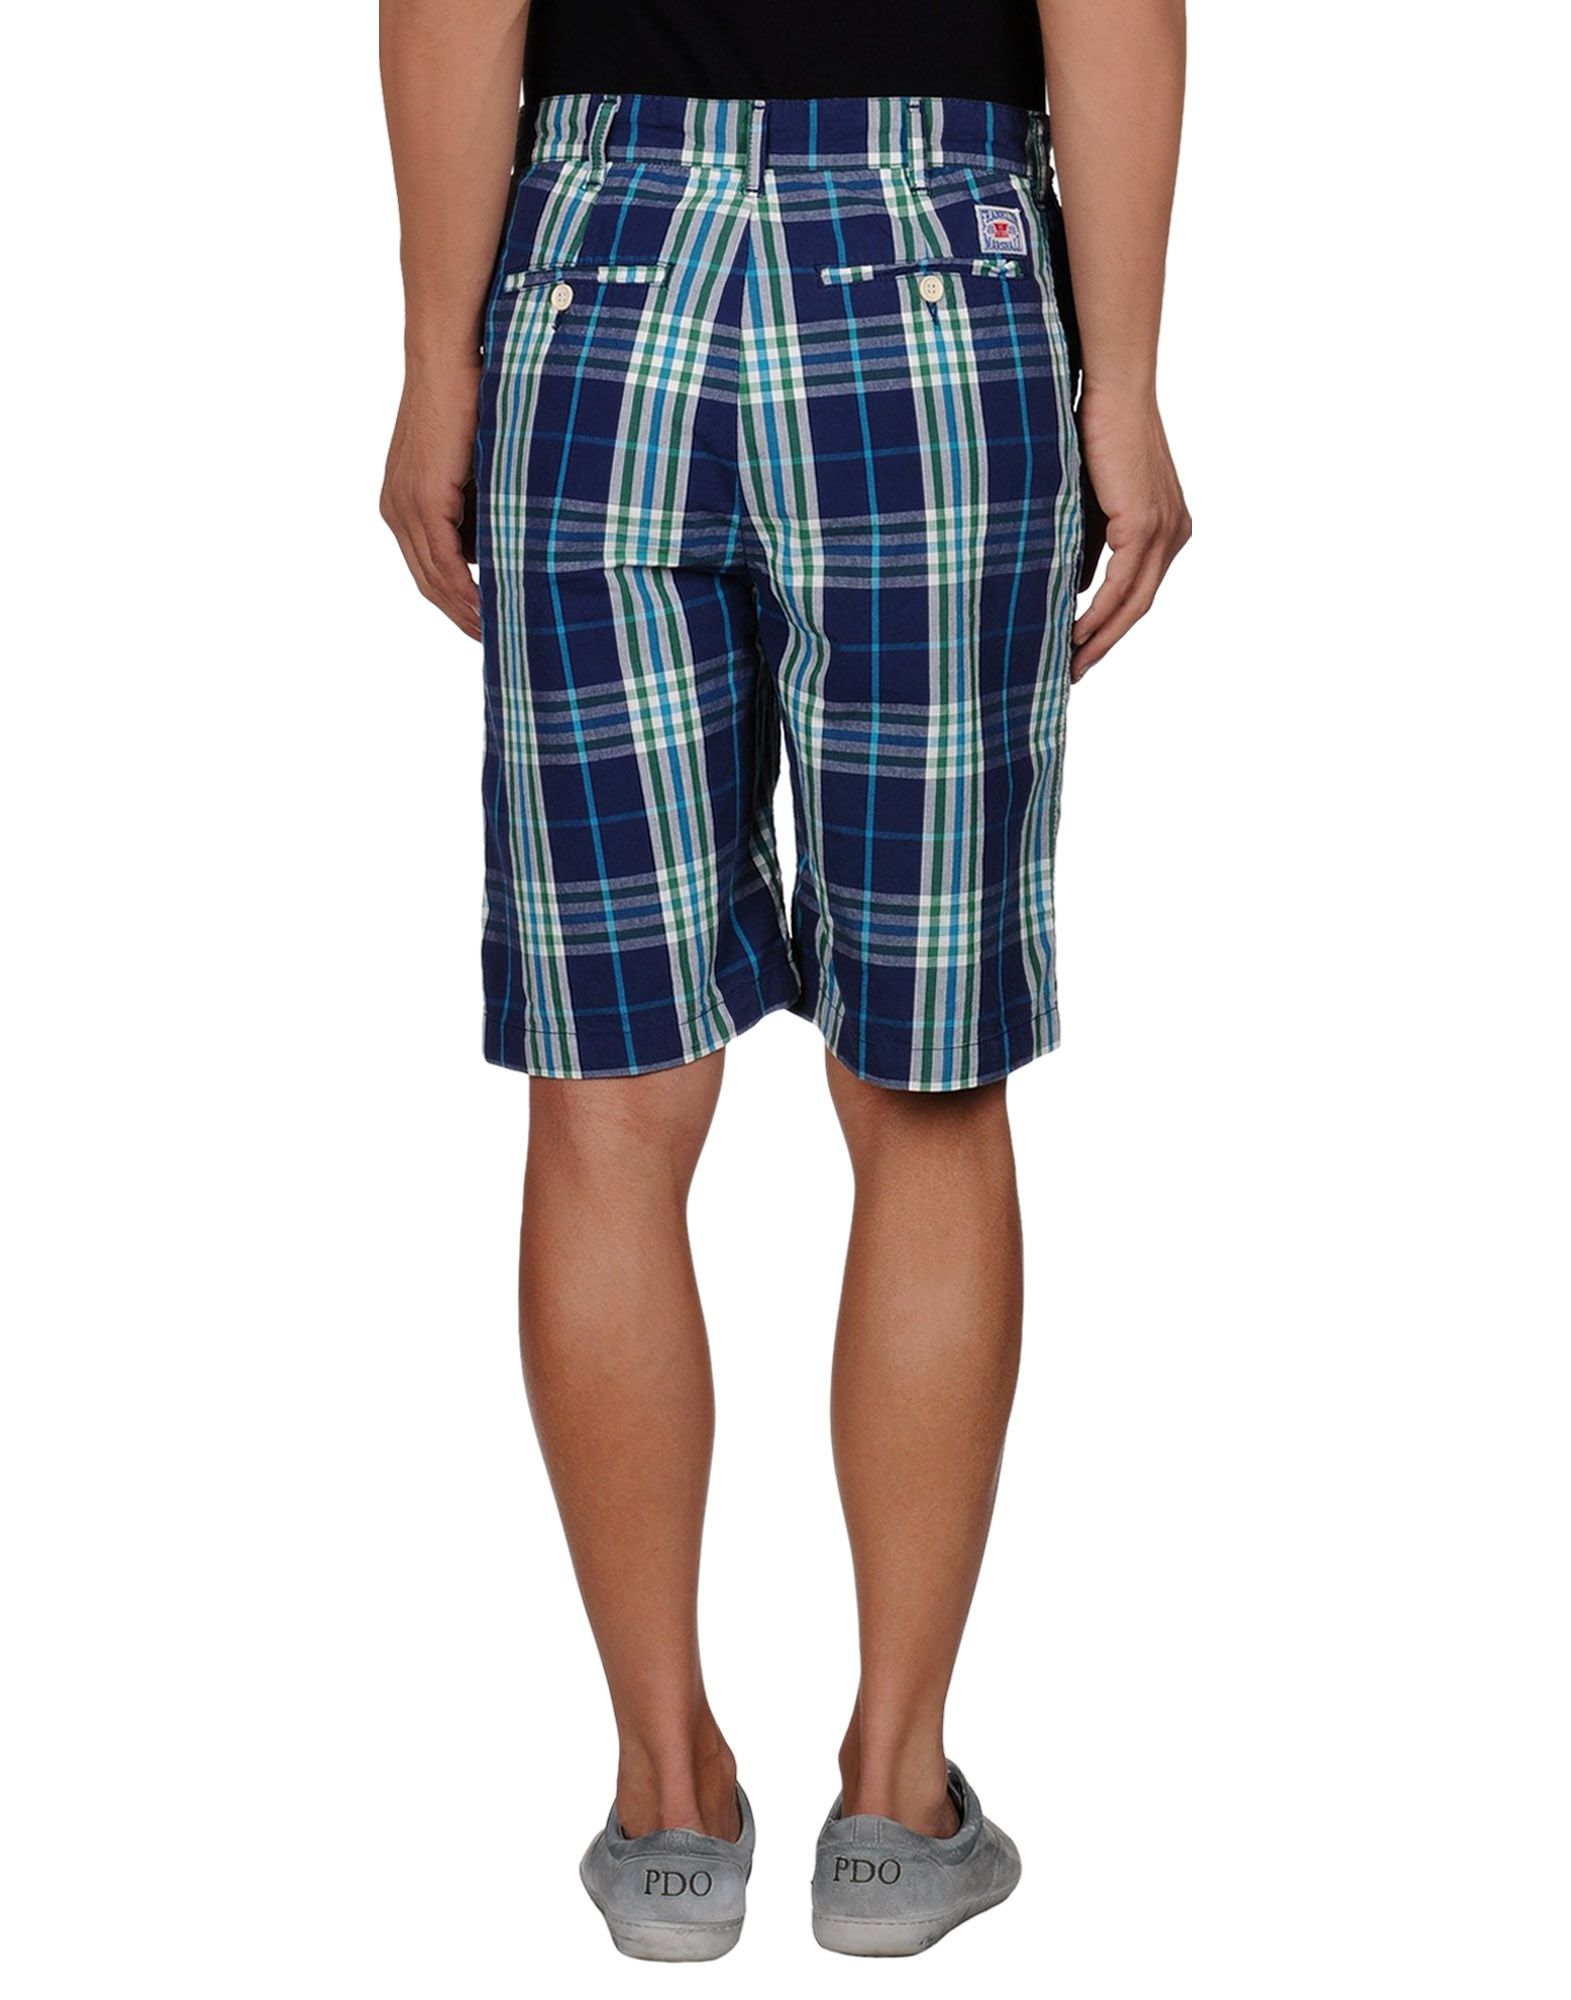 Free shipping BOTH ways on blue bermuda shorts clothing, from our vast selection of styles. Fast delivery, and 24/7/ real-person service with a smile. Click or call